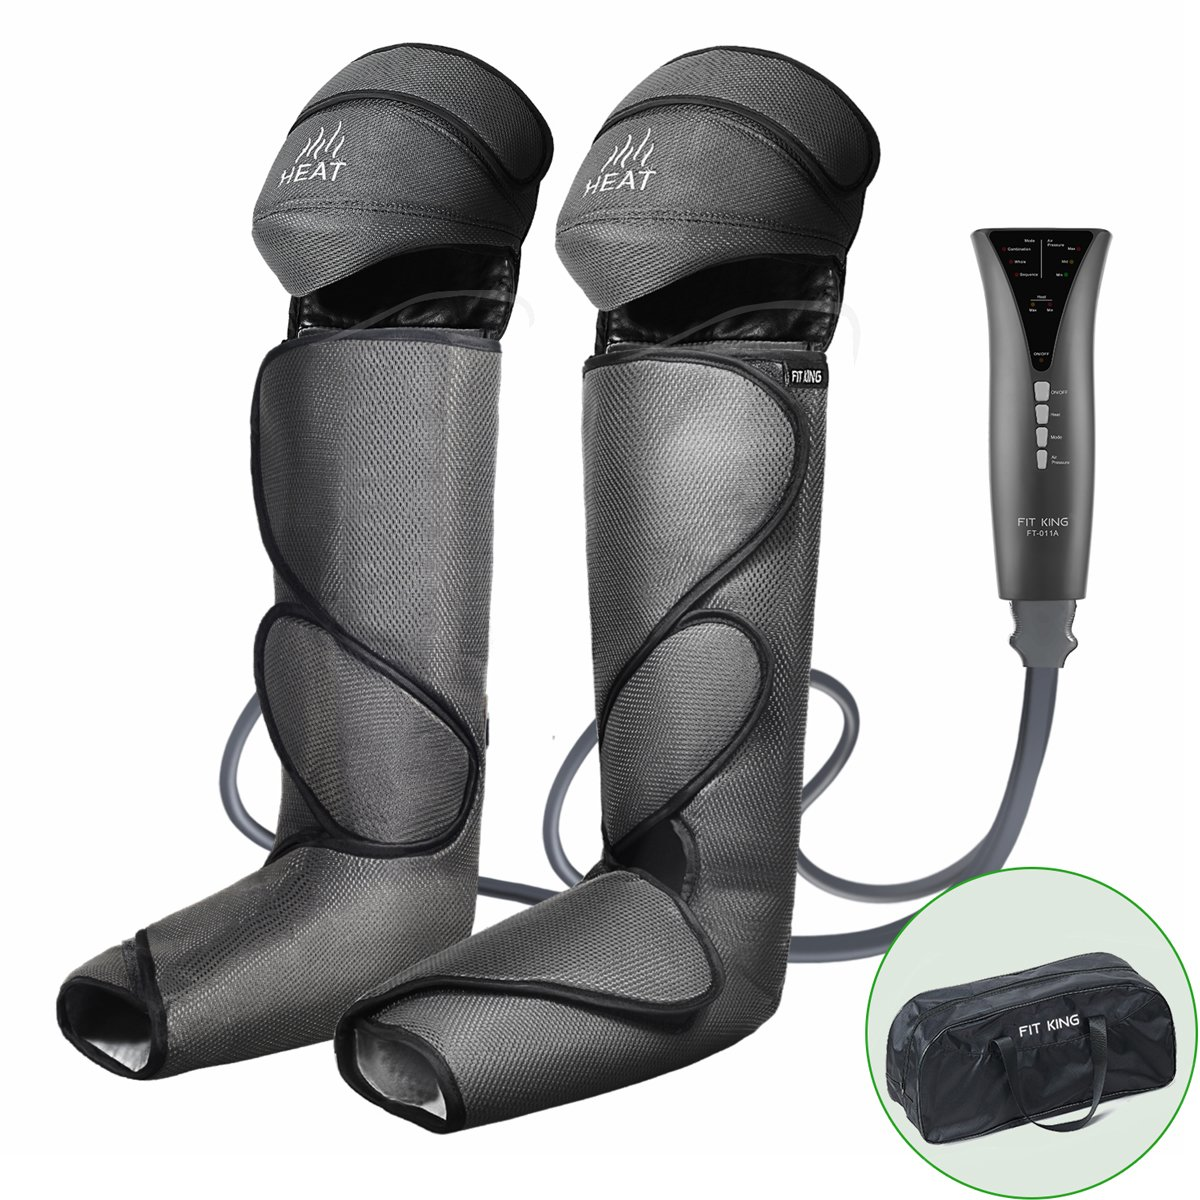 FIT KING Leg & Foot Air Massager and Knee Warmer for Foot Calf and Knee Circulation Massage with Size Extensions and 3 Modes 3 Intensities